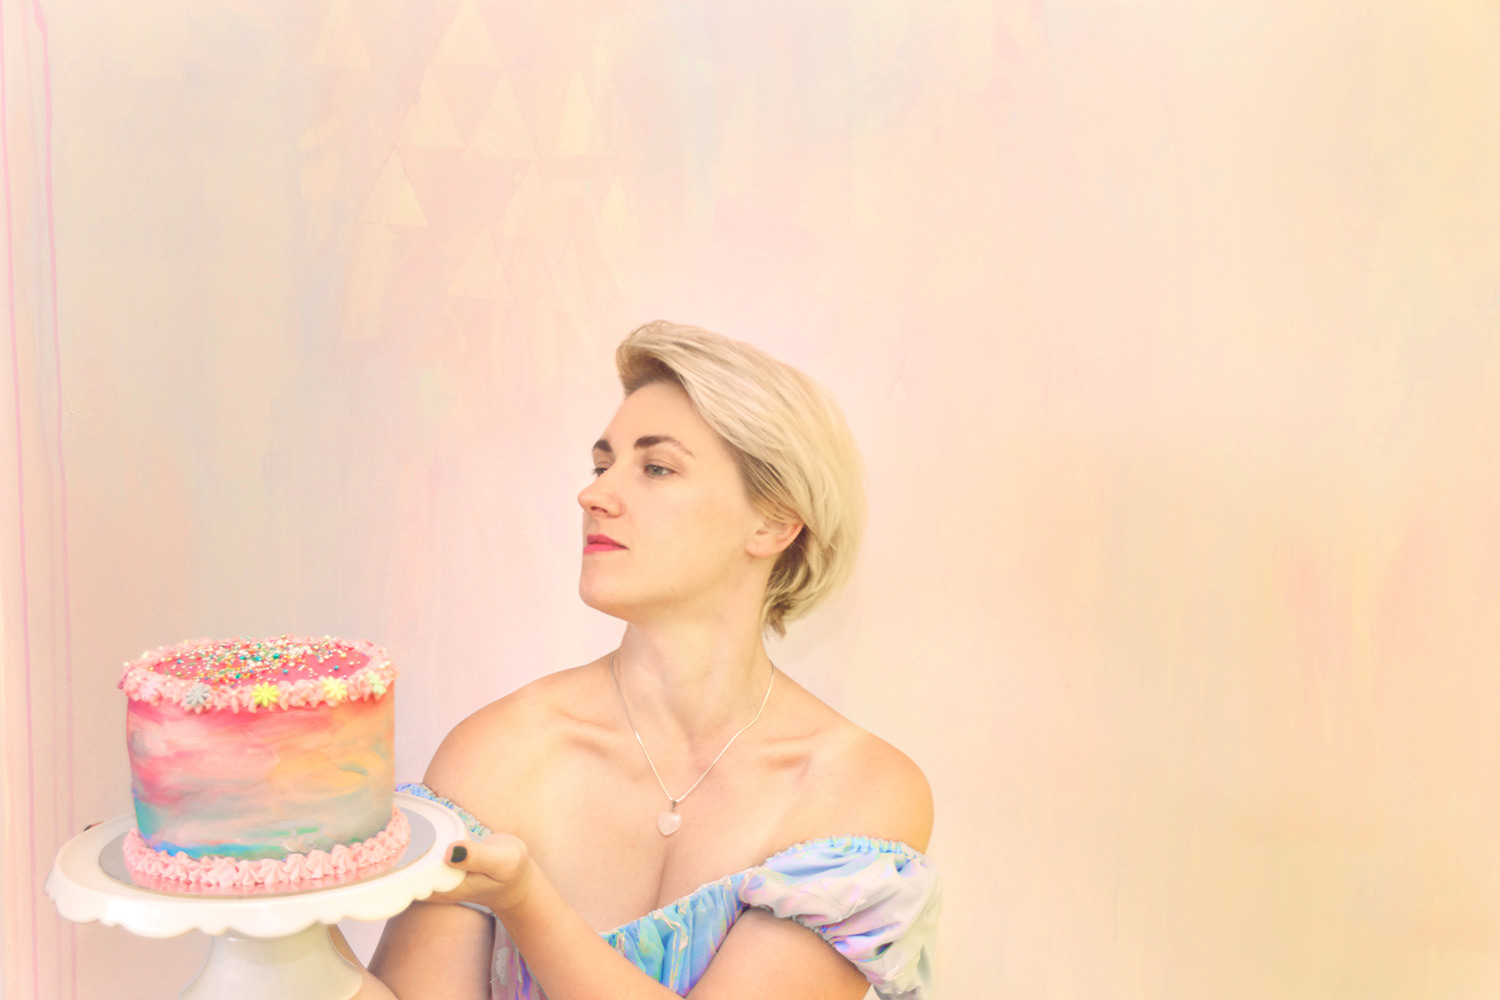 Alice in Wonderland party theme styled interior featuring pastel abstract mural and portrait of Alice carrying a rainbow layer cake with sprinkles, wearing off the shoulder blue princess dress and short blonde hair.